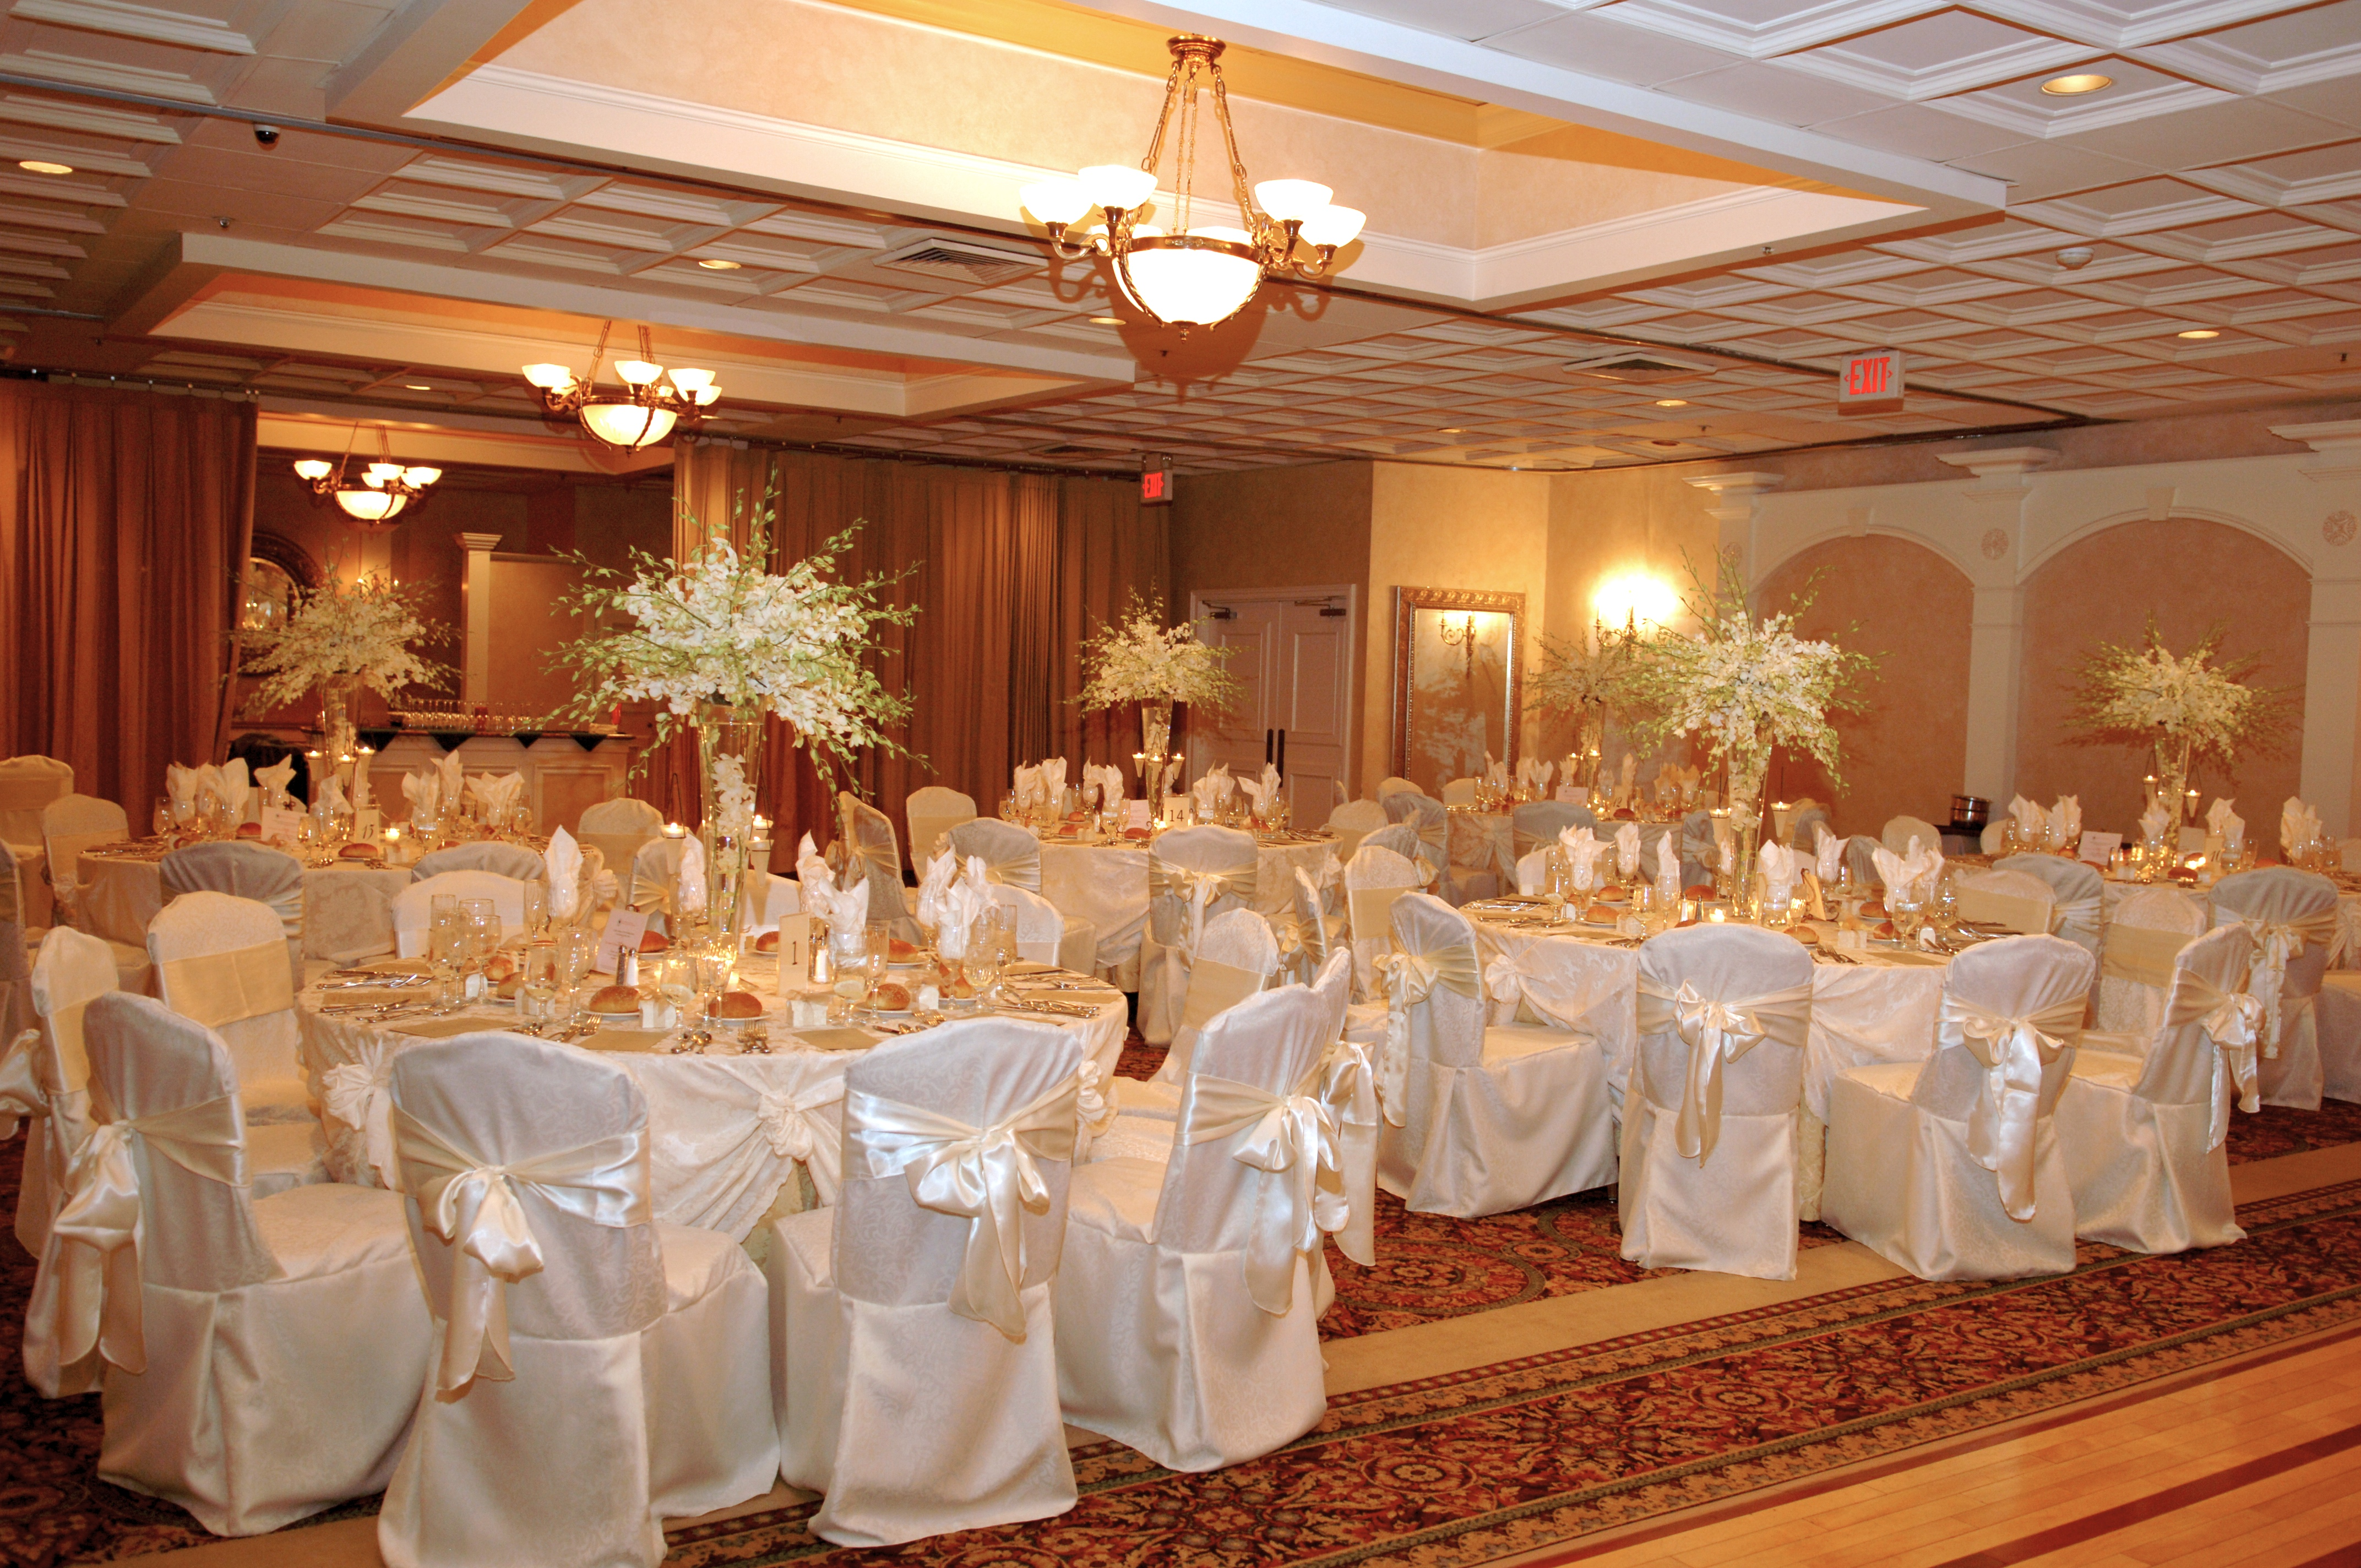 81 Woodbury Country Club Wedding Ny 8227 Woodbury